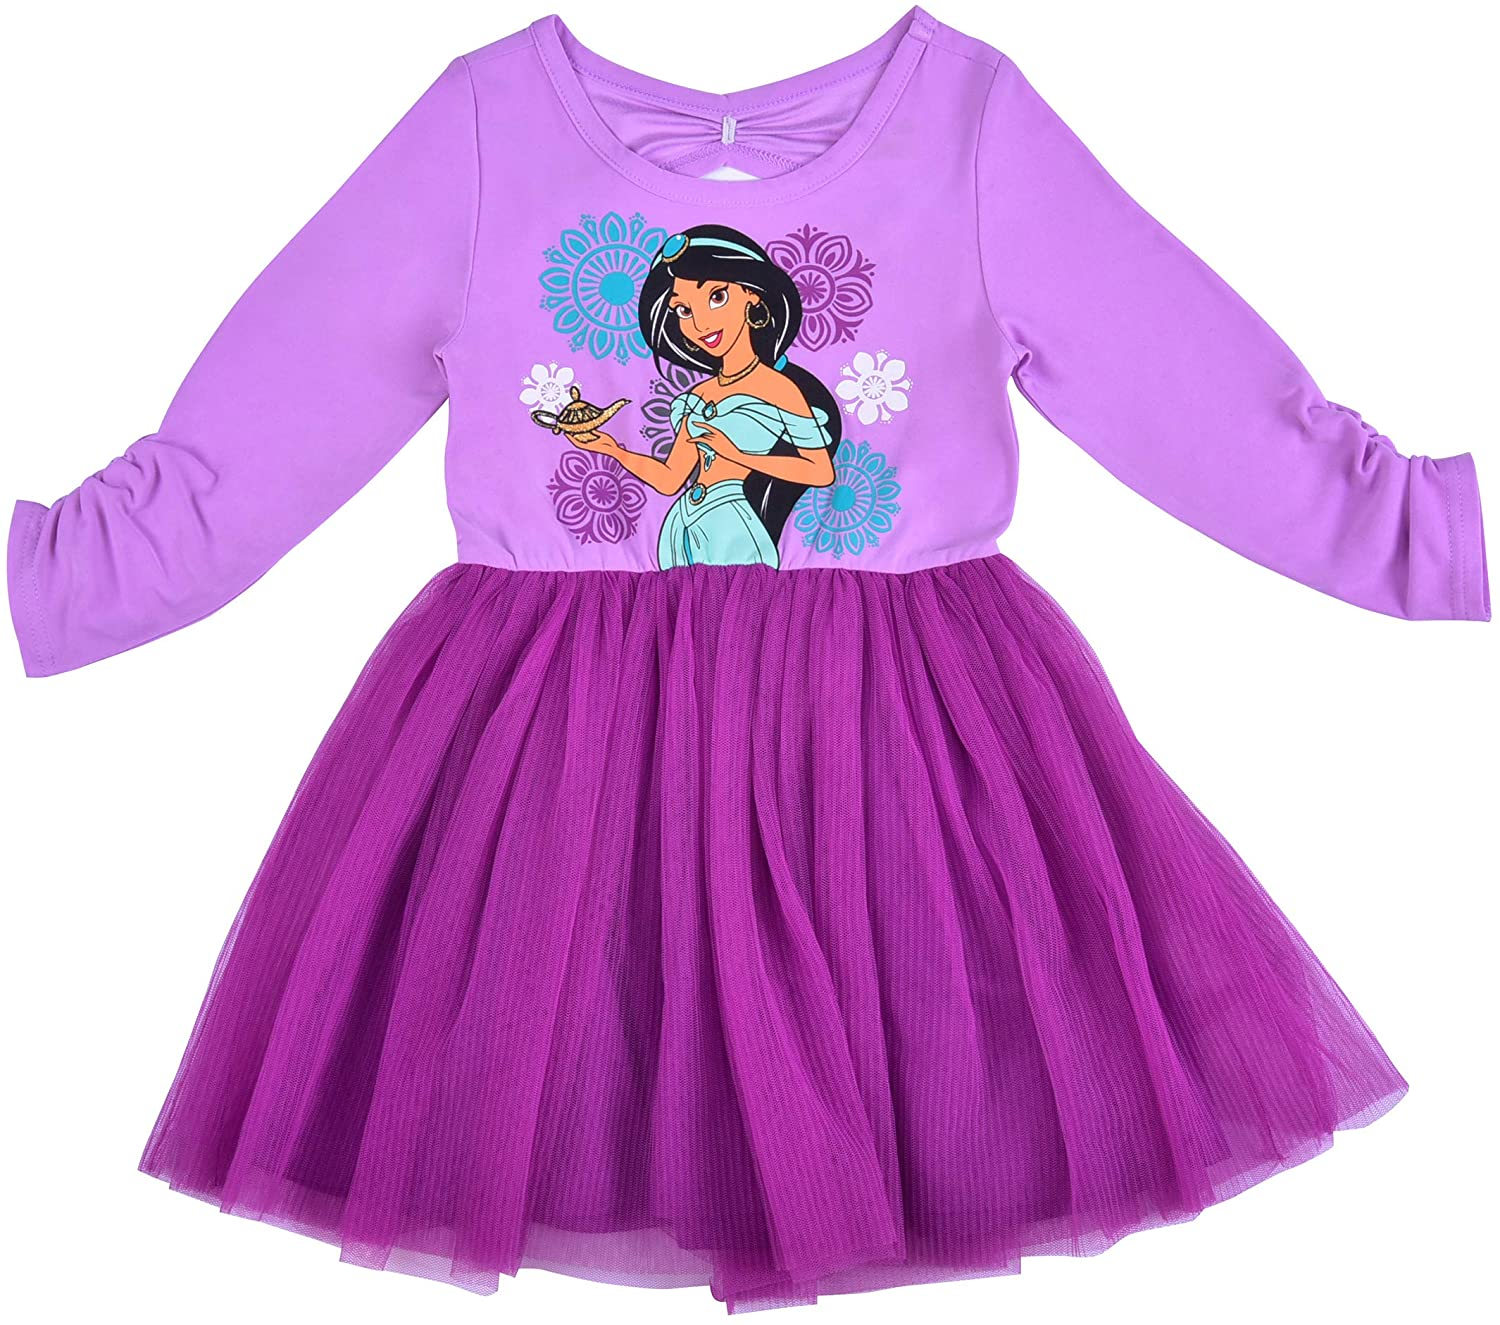 Disney Princess Jasmine Dress for Girls, Long Sleeve with Tulle Skirt for Toddlers